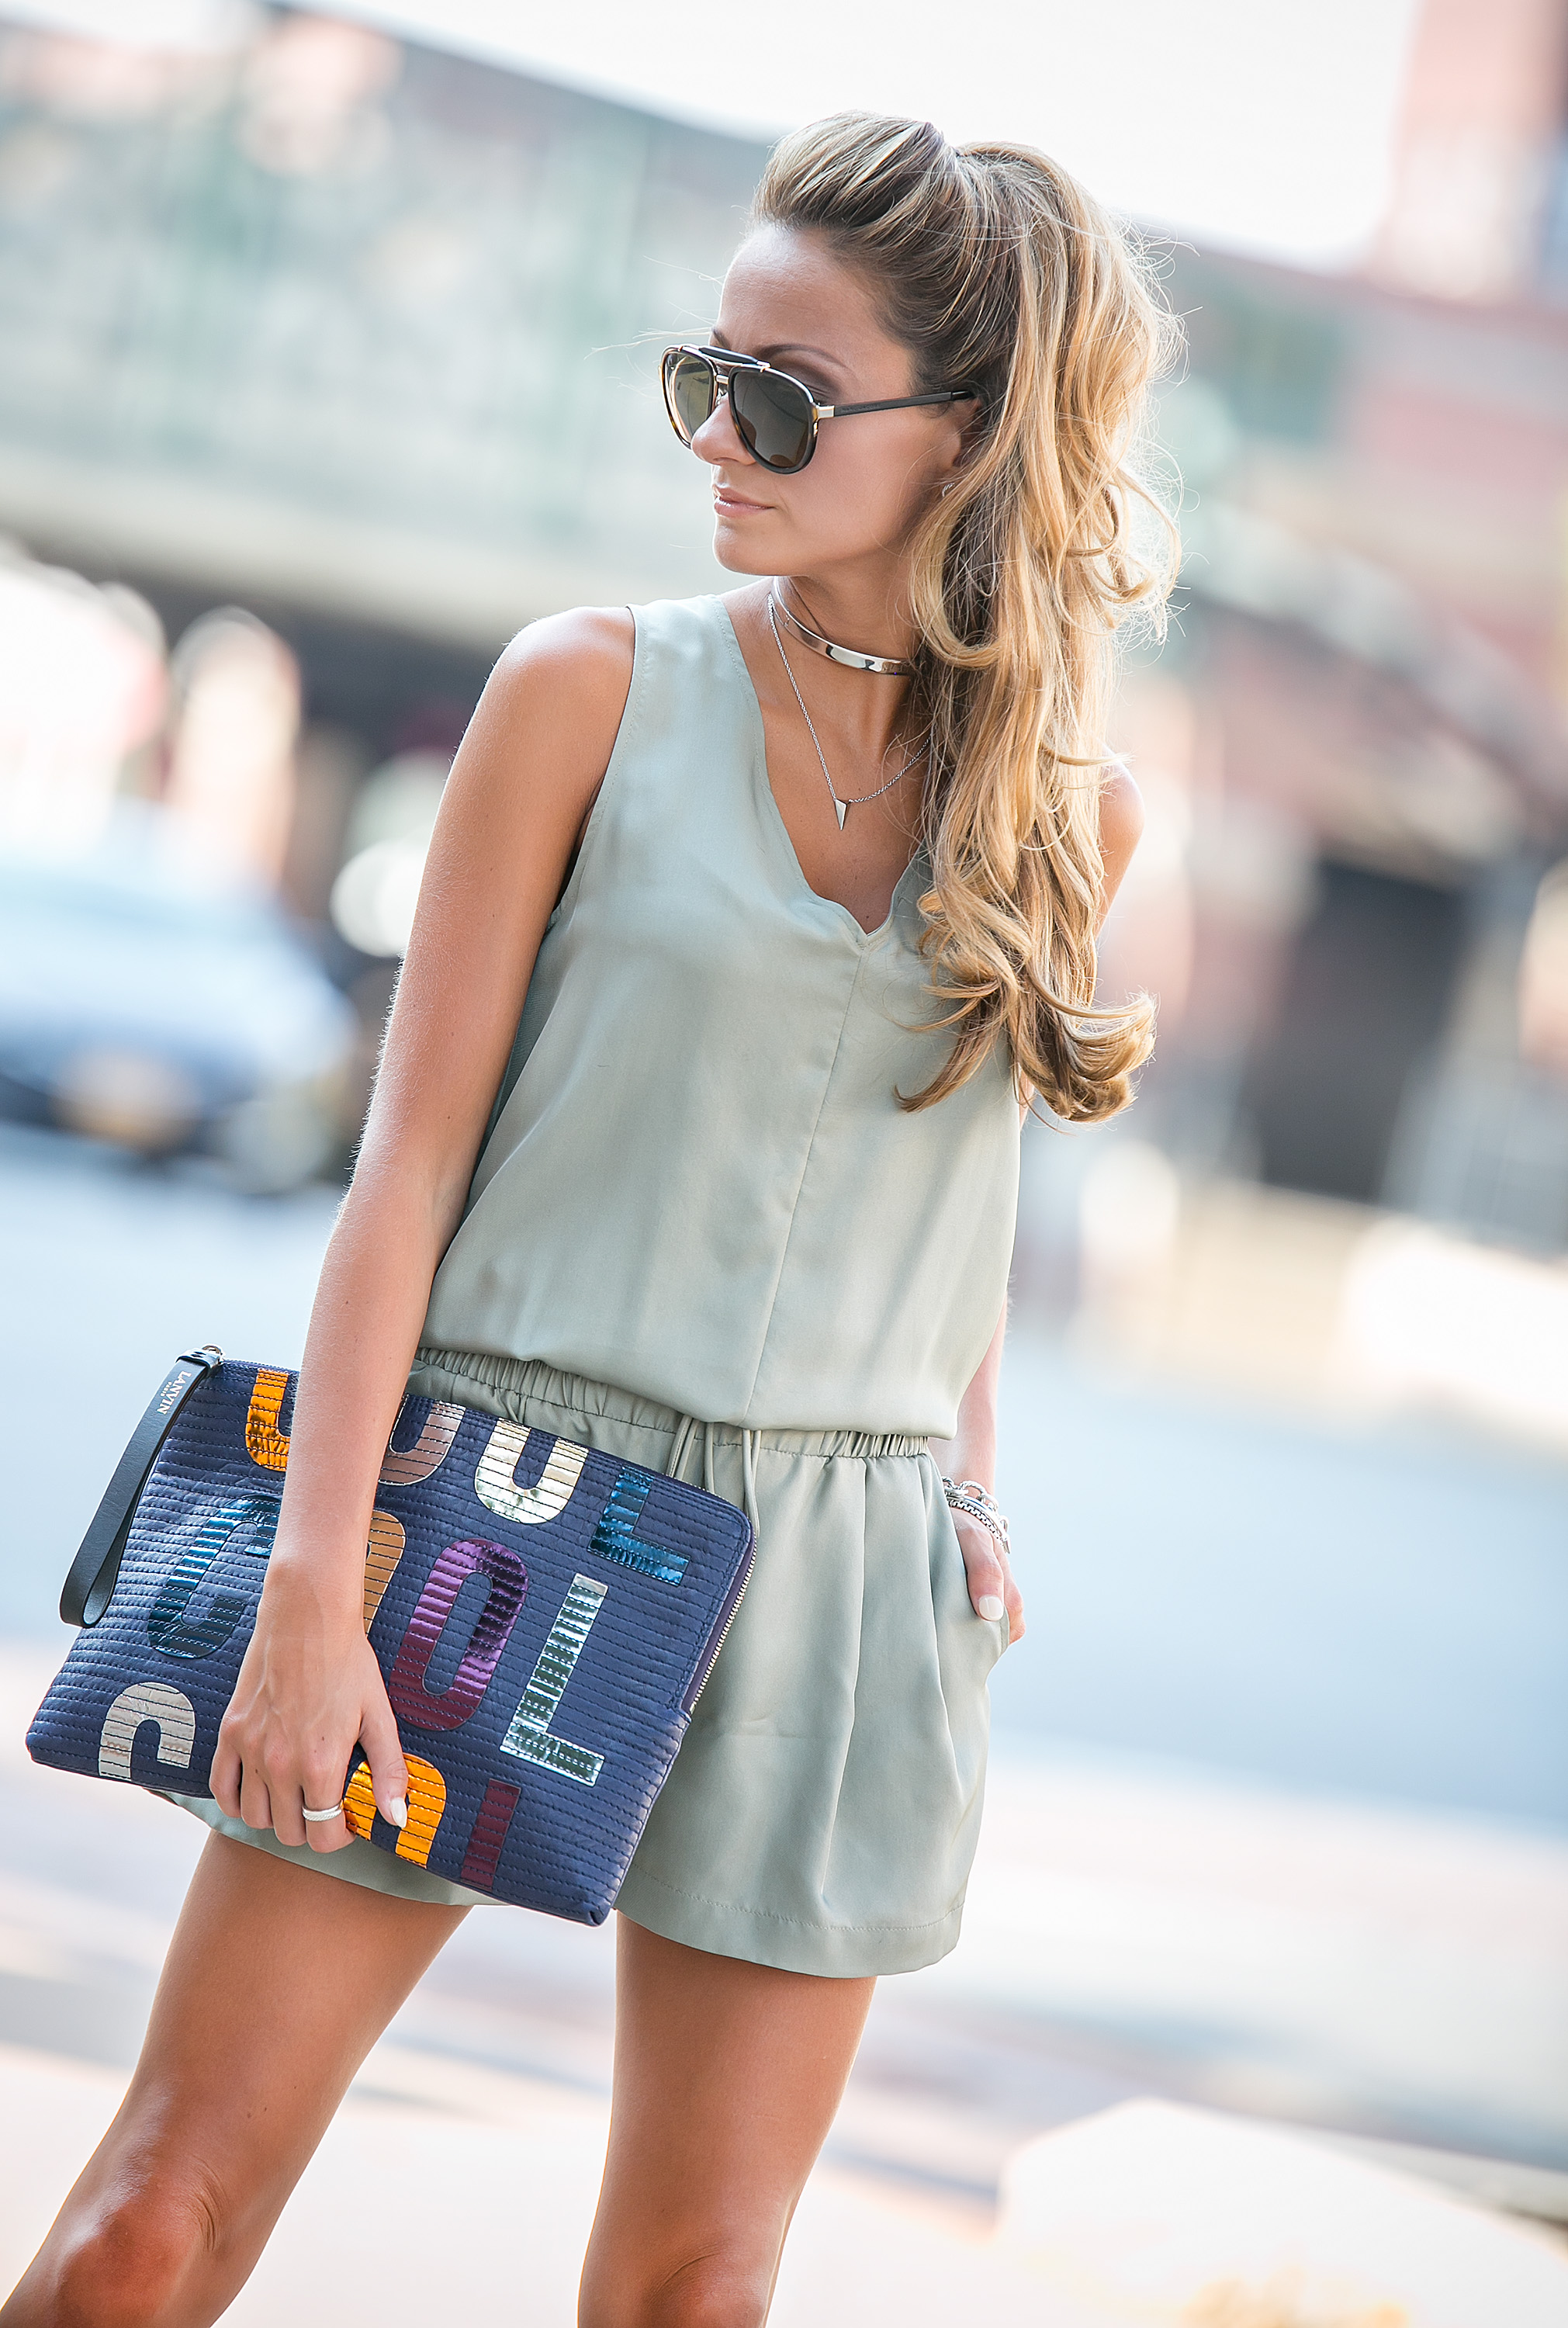 fashion blogger wearing eddie borgo, alexis bitter, lanvin, and marc jacobs accessories